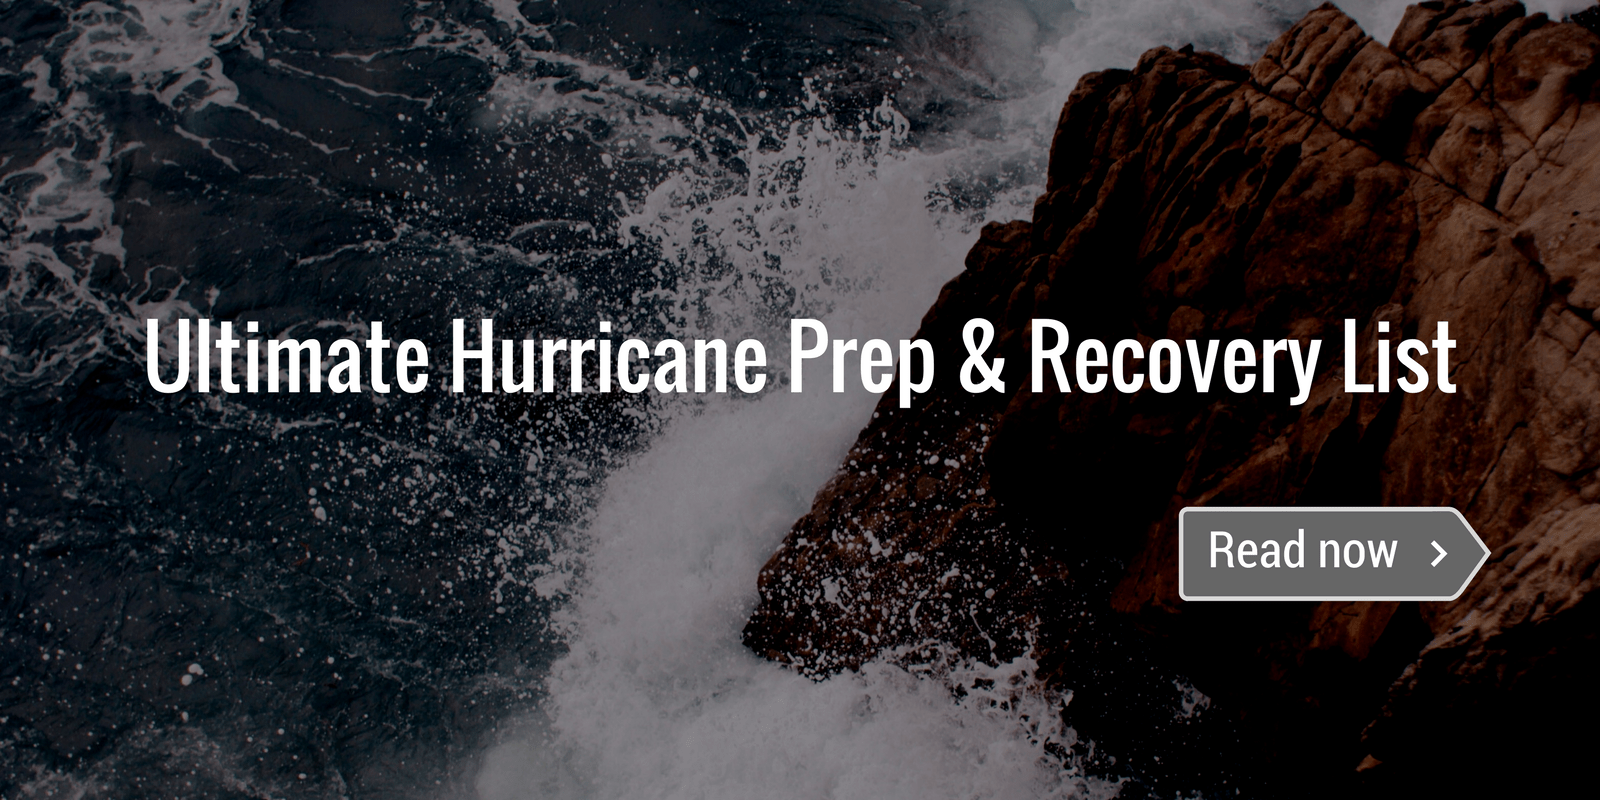 National Hurricane Preparedness Week – Resources for Property Owners